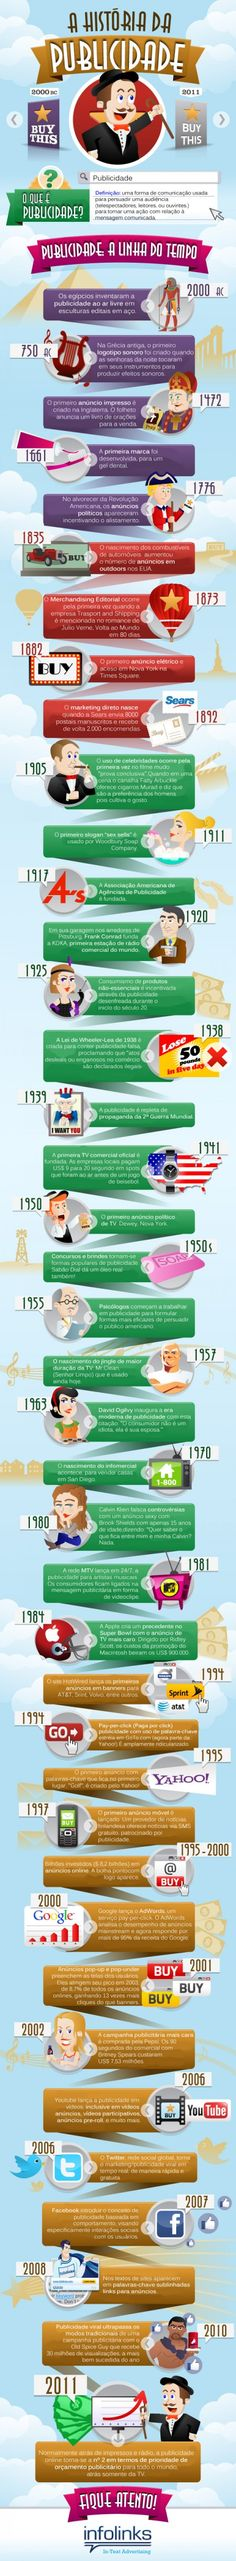 My friends over at Infolinks have created a cool infographic on the history of advertising. It is a brief history/timeline of advertising and its evolution. Marketing Digital, Marketing Mail, Marketing En Internet, Guerilla Marketing, Content Marketing, Online Marketing, Social Media Marketing, Business Marketing, Marketing Communications